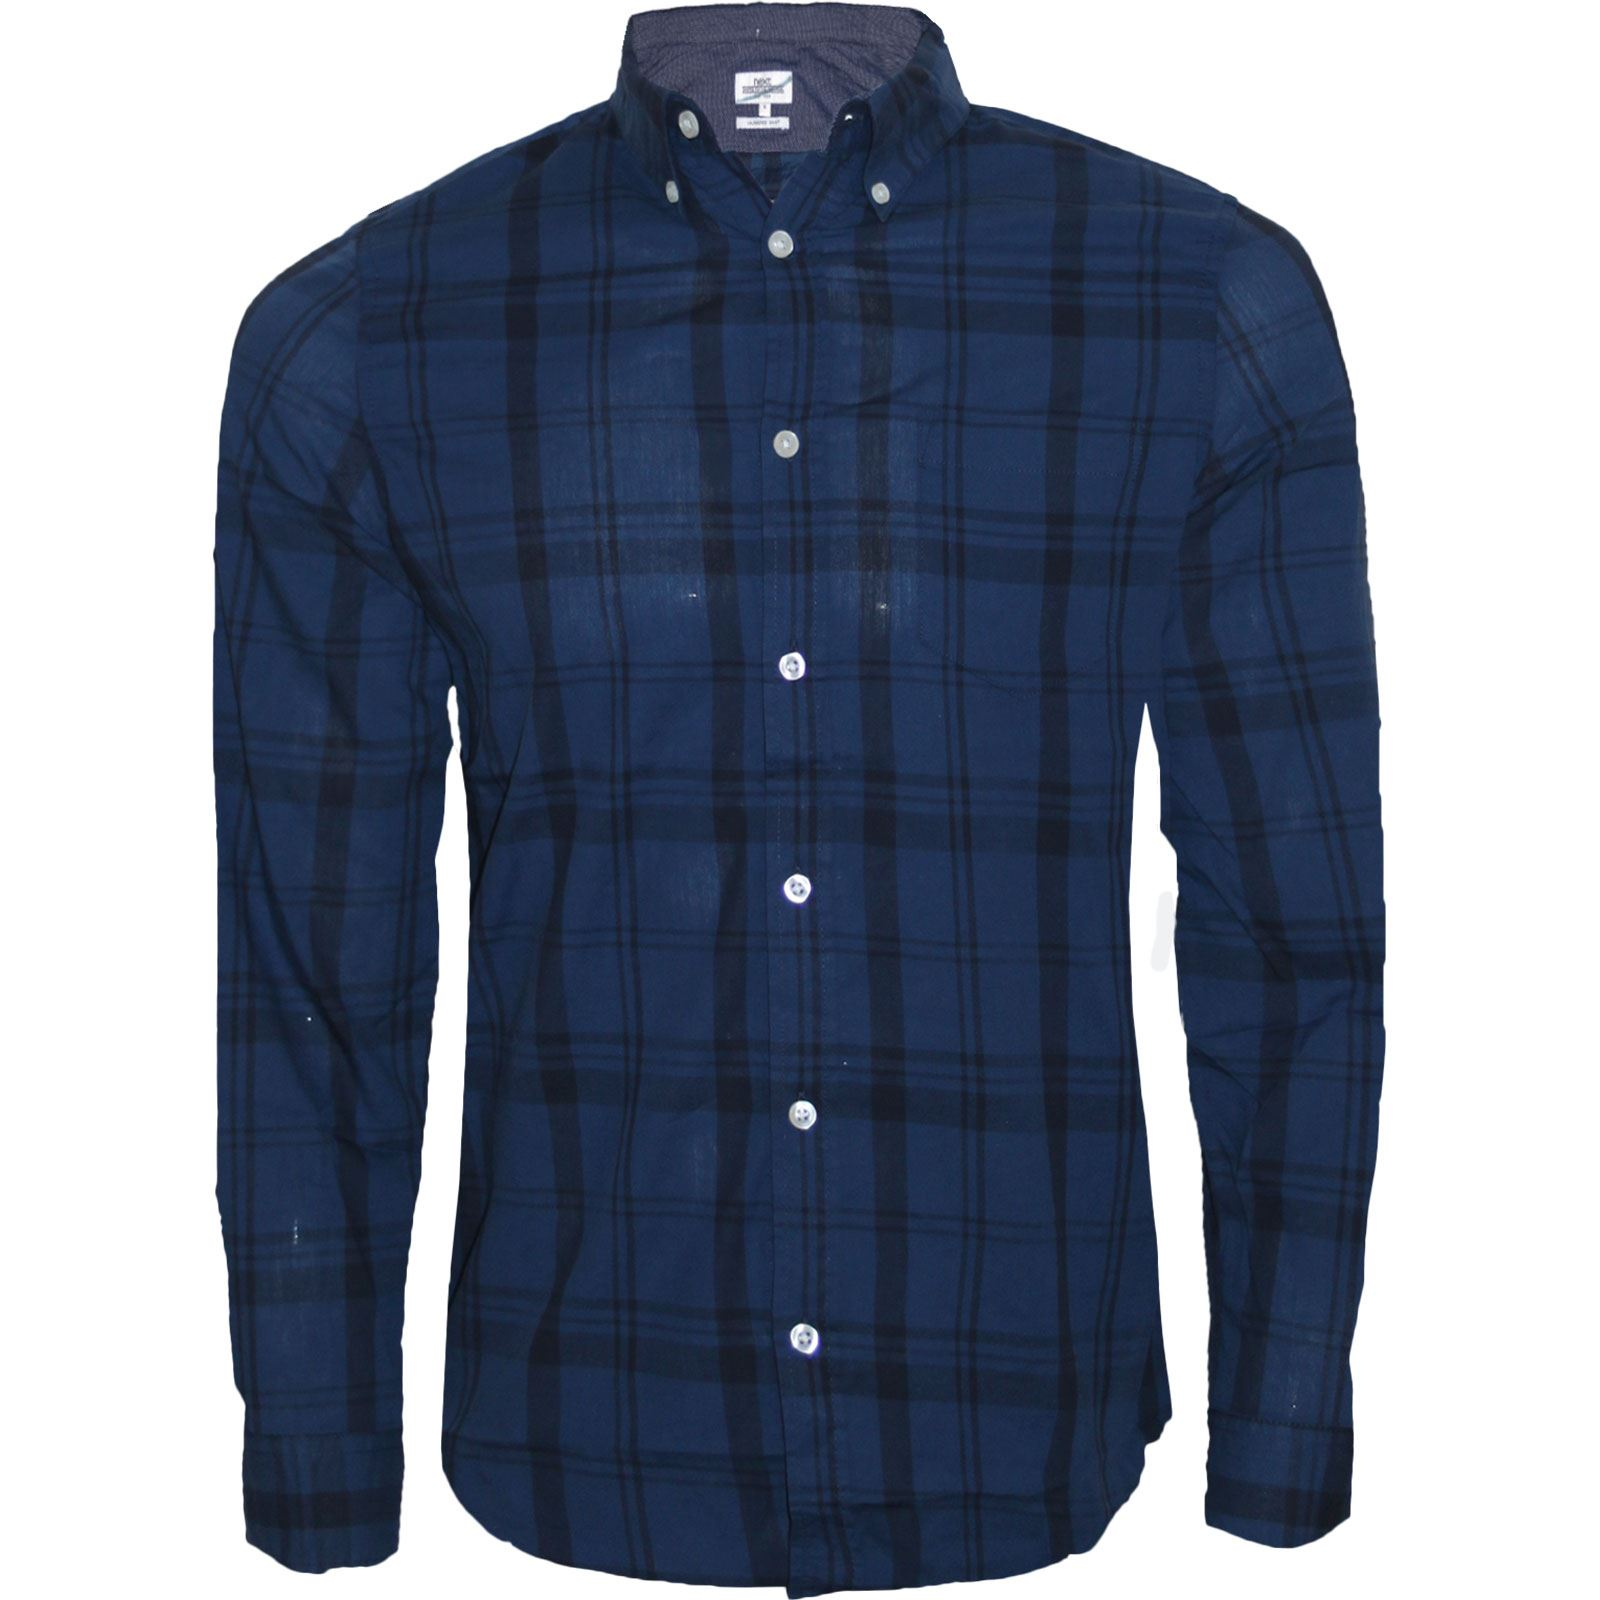 Casual Shirts For Men - The Best New Designer Styles - ReissFree Shipping Over +$· Free Returns· Menswear· Blog71,+ followers on Twitter.